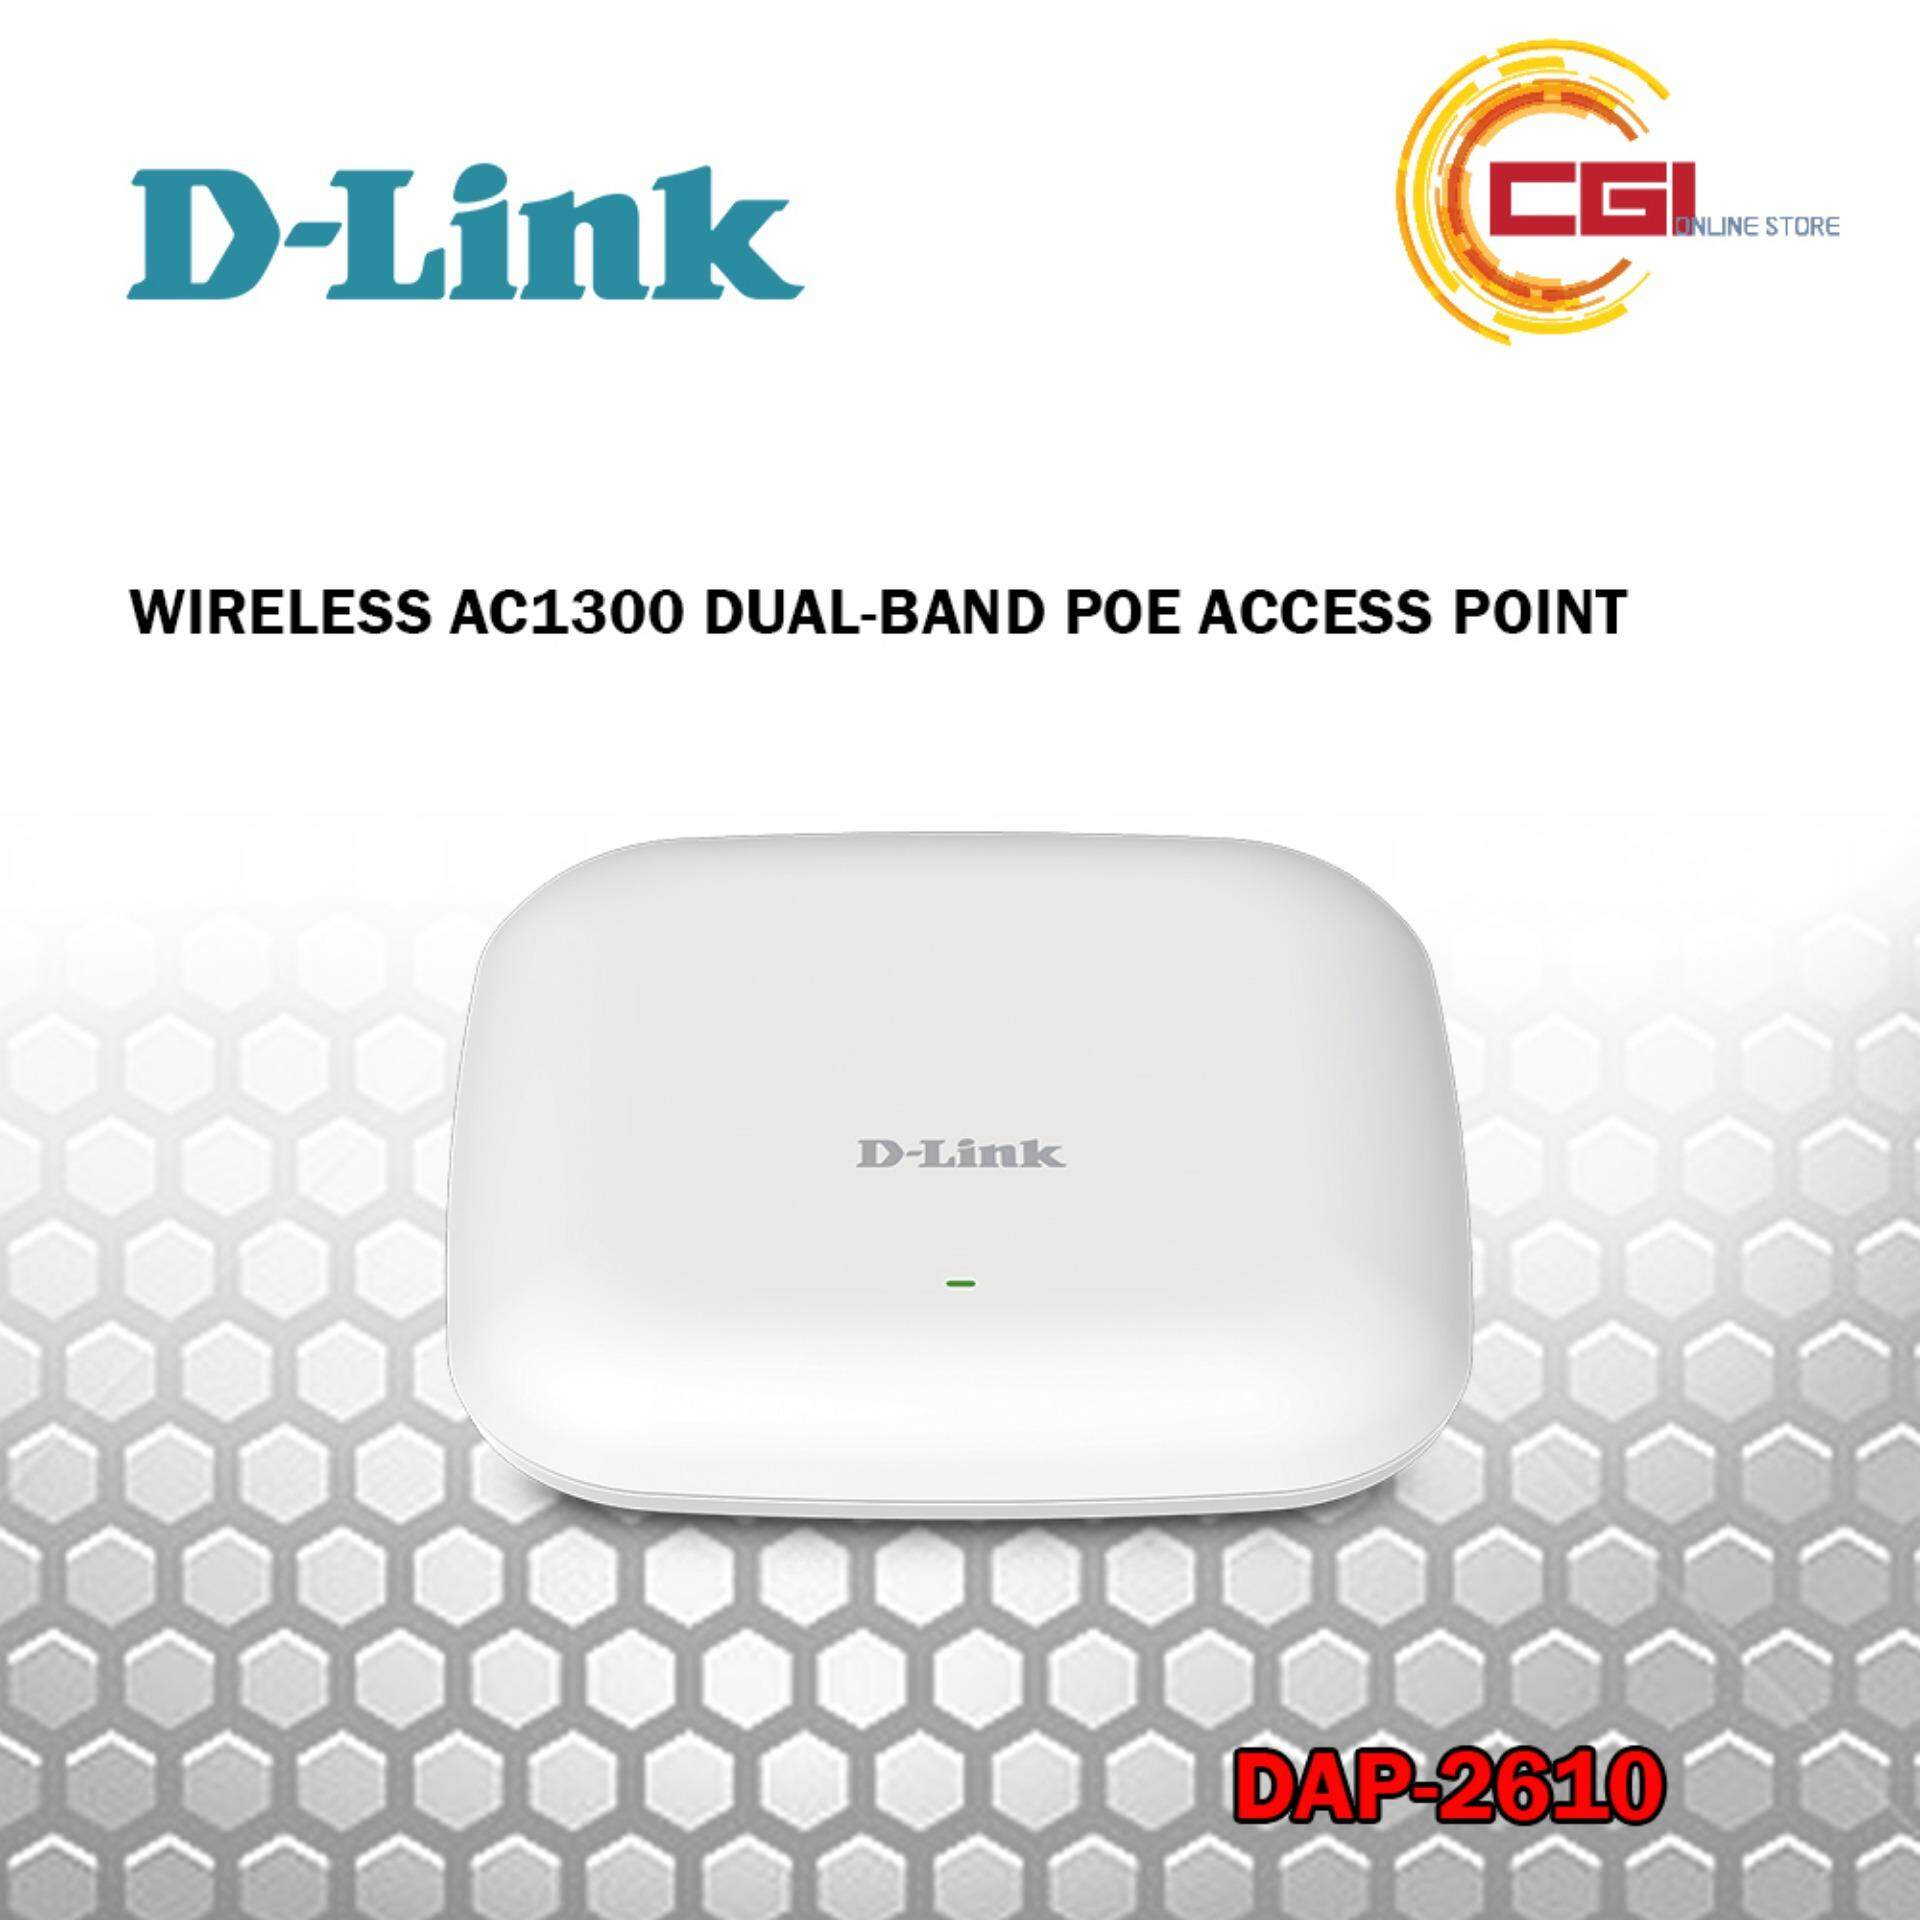 D-Link DAP-2610 Wireless AC1300 Dual-Band POE Access Point